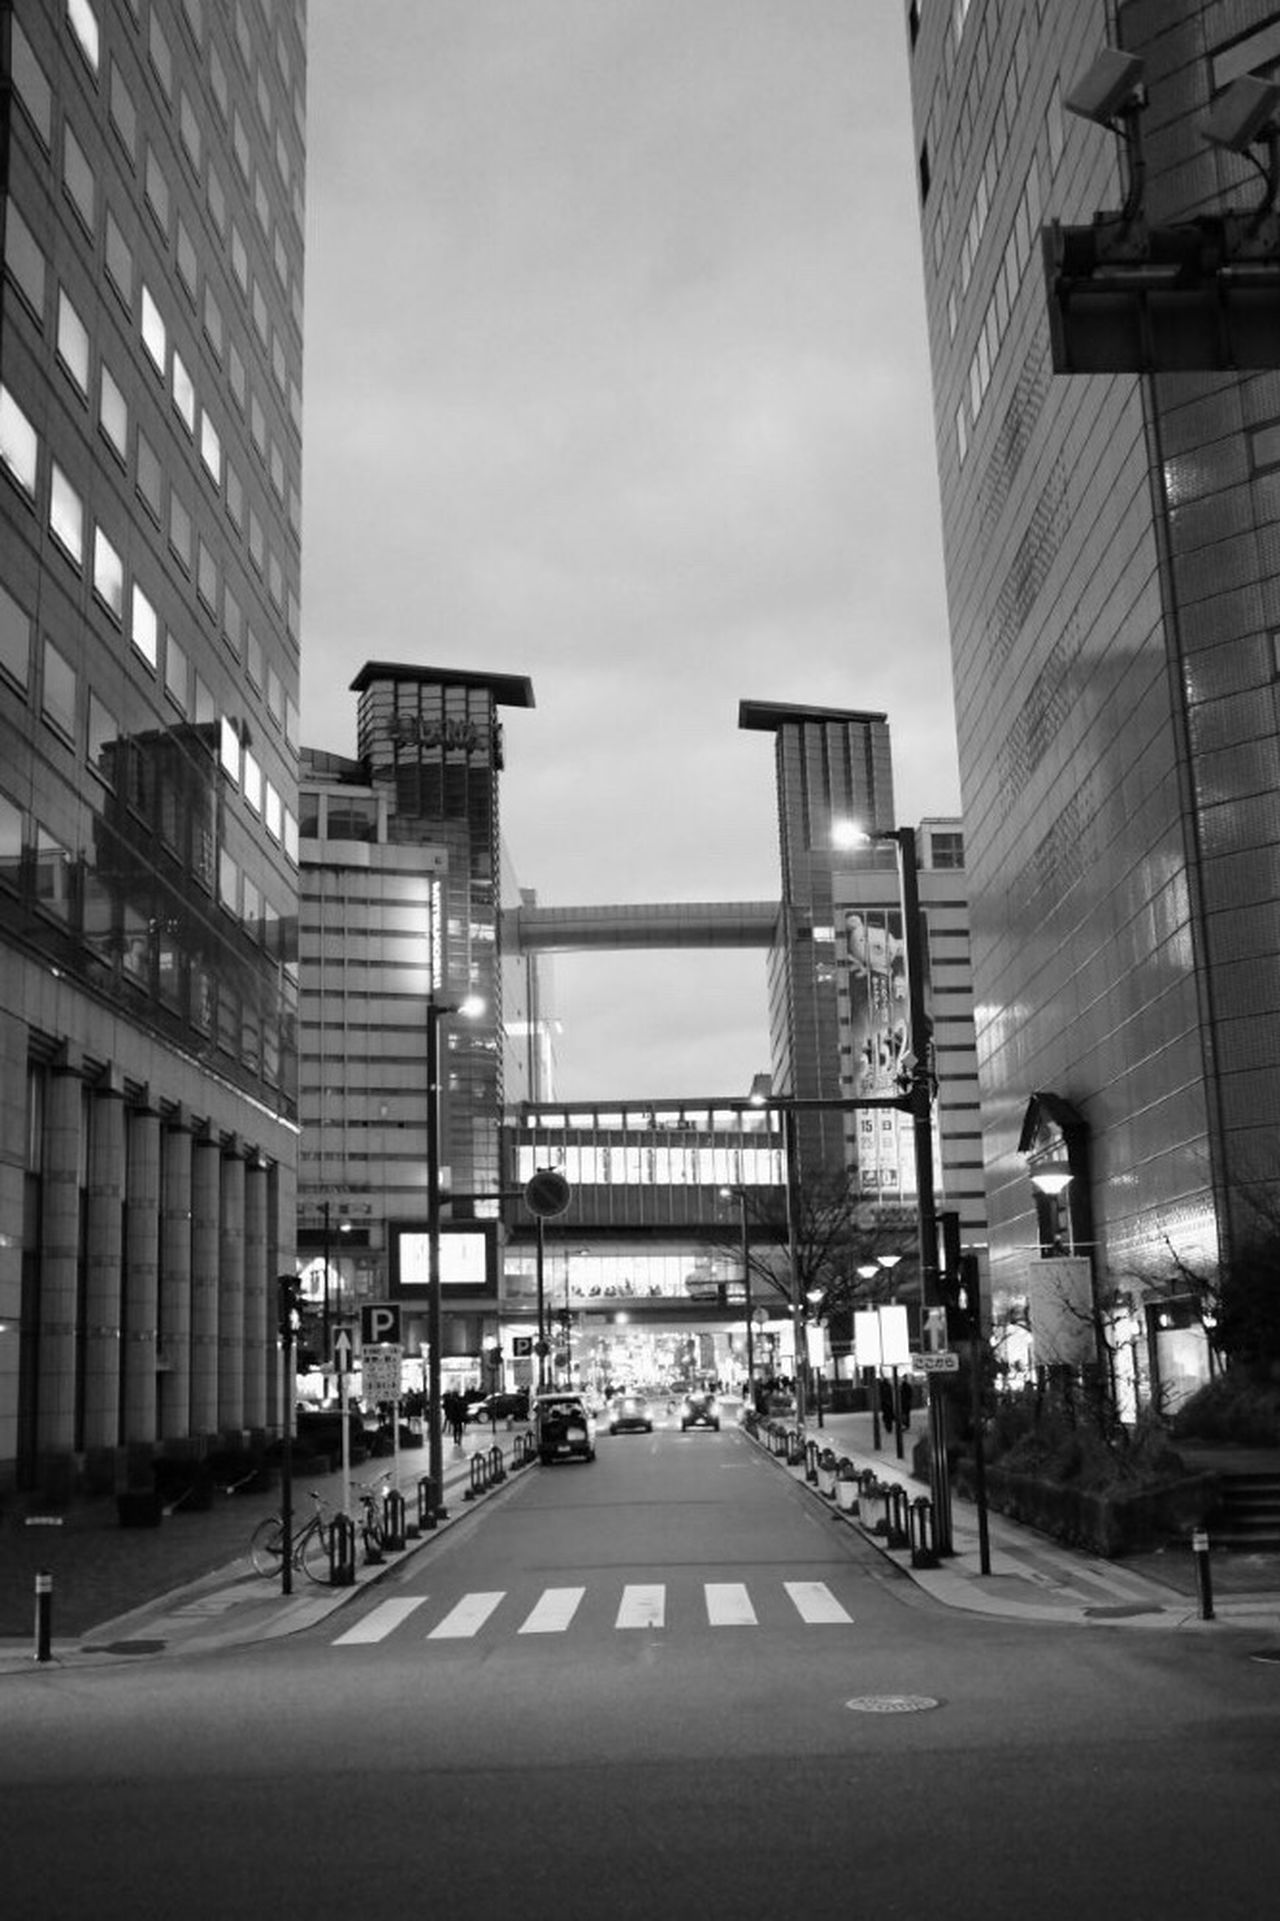 久しぶりのモノクロ Blackandwhite Black And White Black & White Blackandwhite Photography Black&white Monochrome EyeEm EyeEm Gallery Fujifilm X-E2 Fujifilm_xseries Fukuoka-shi Fukuoka,Japan Taking Photos Taking Photos Japan Building Fukuoka Japan Photography Sky Nippon 日常 Town Nightlights Nightphotography Night Photography